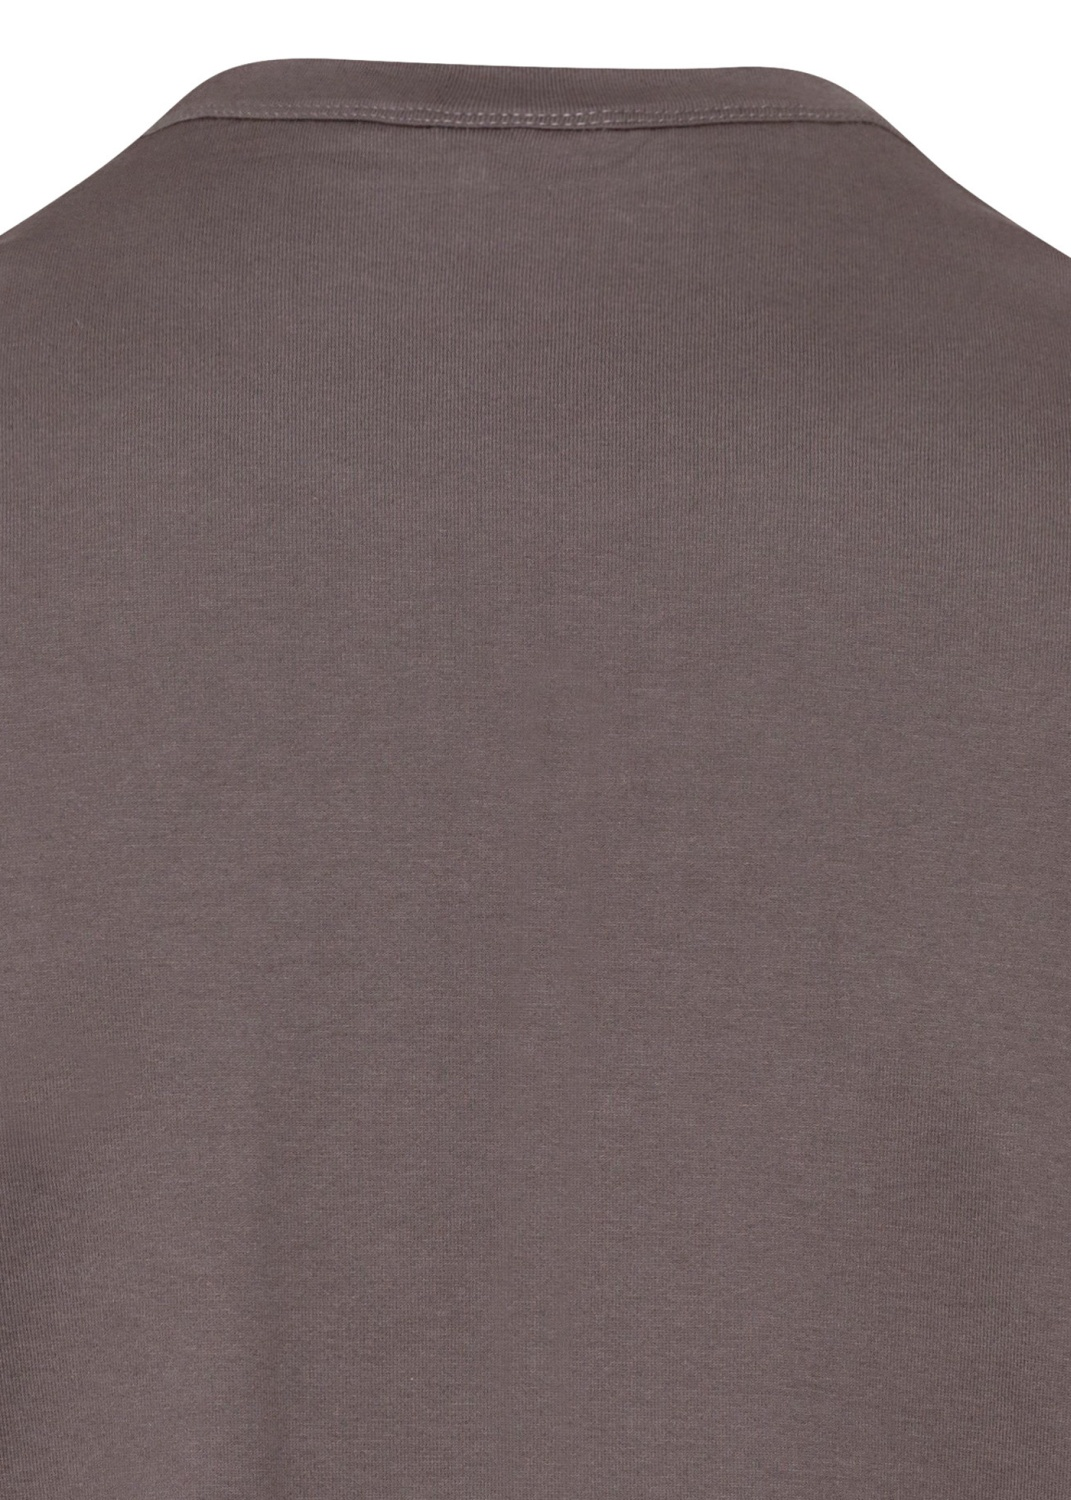 MEN'S KNITTED T-SHIRT C.W. COTTON image number 3